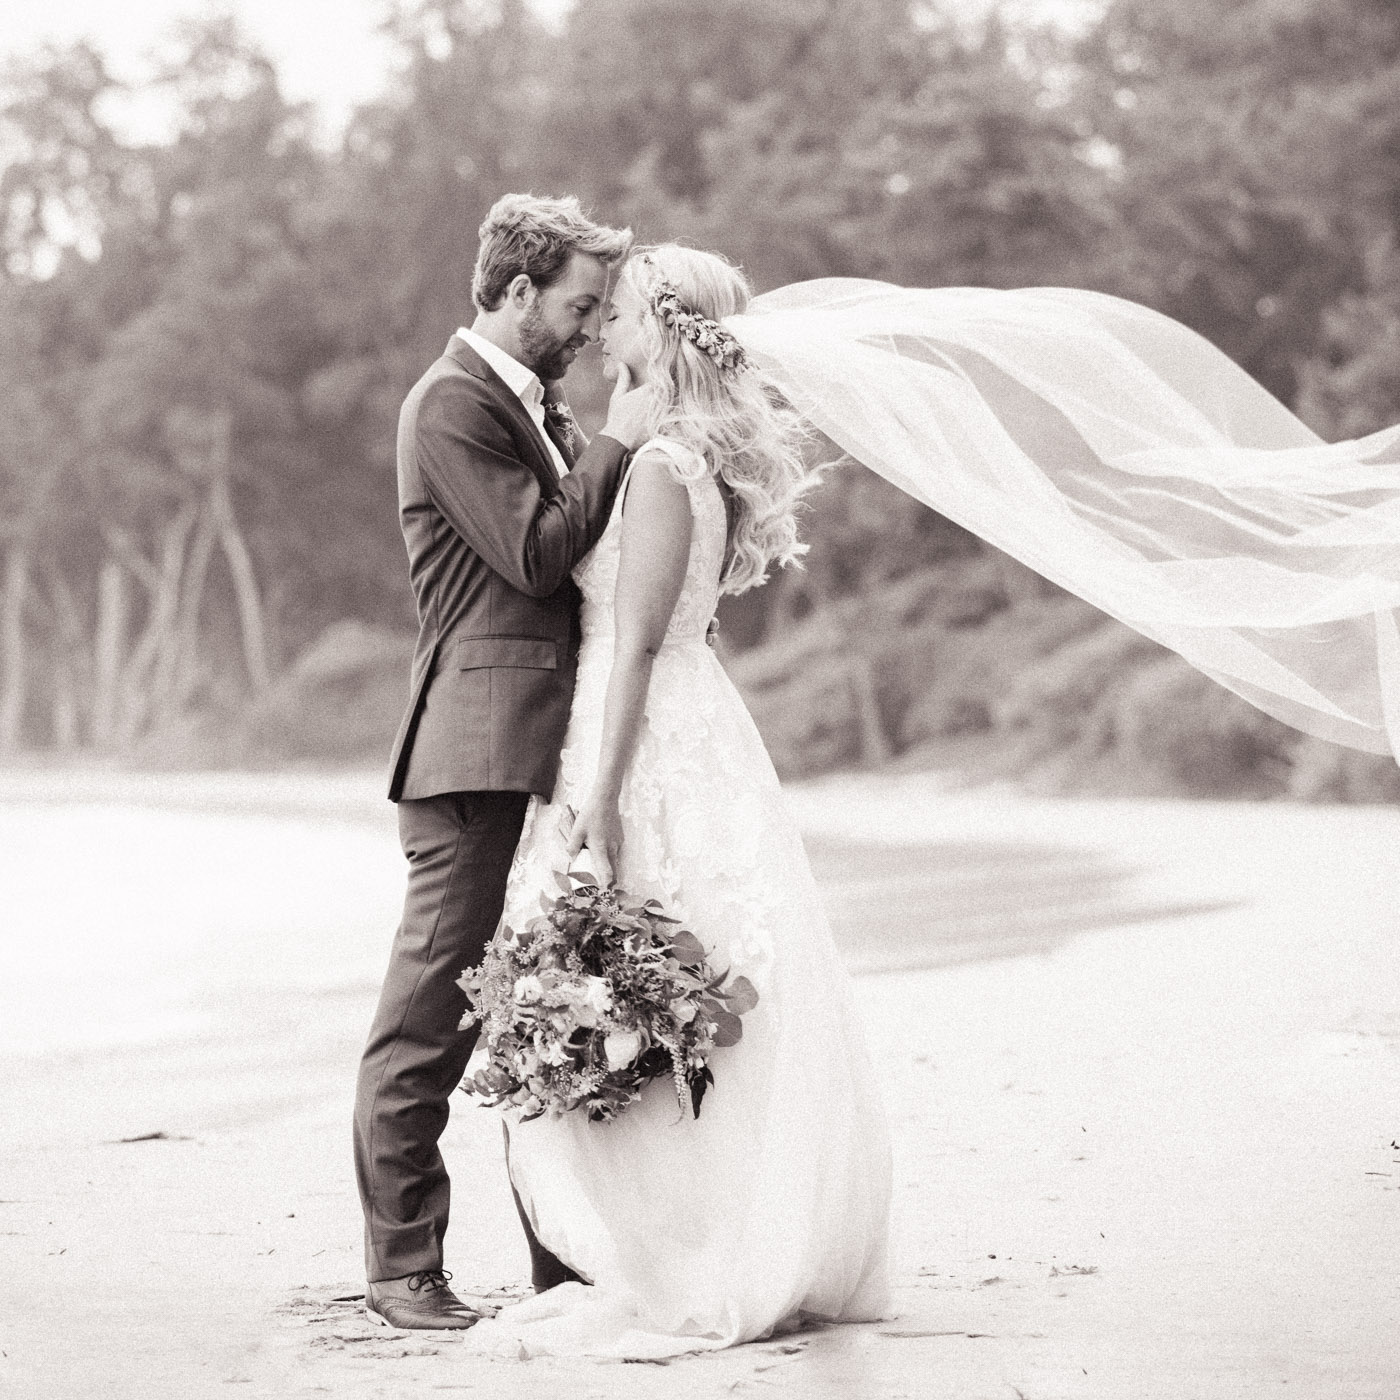 Beach Wedding Photo in Black and White